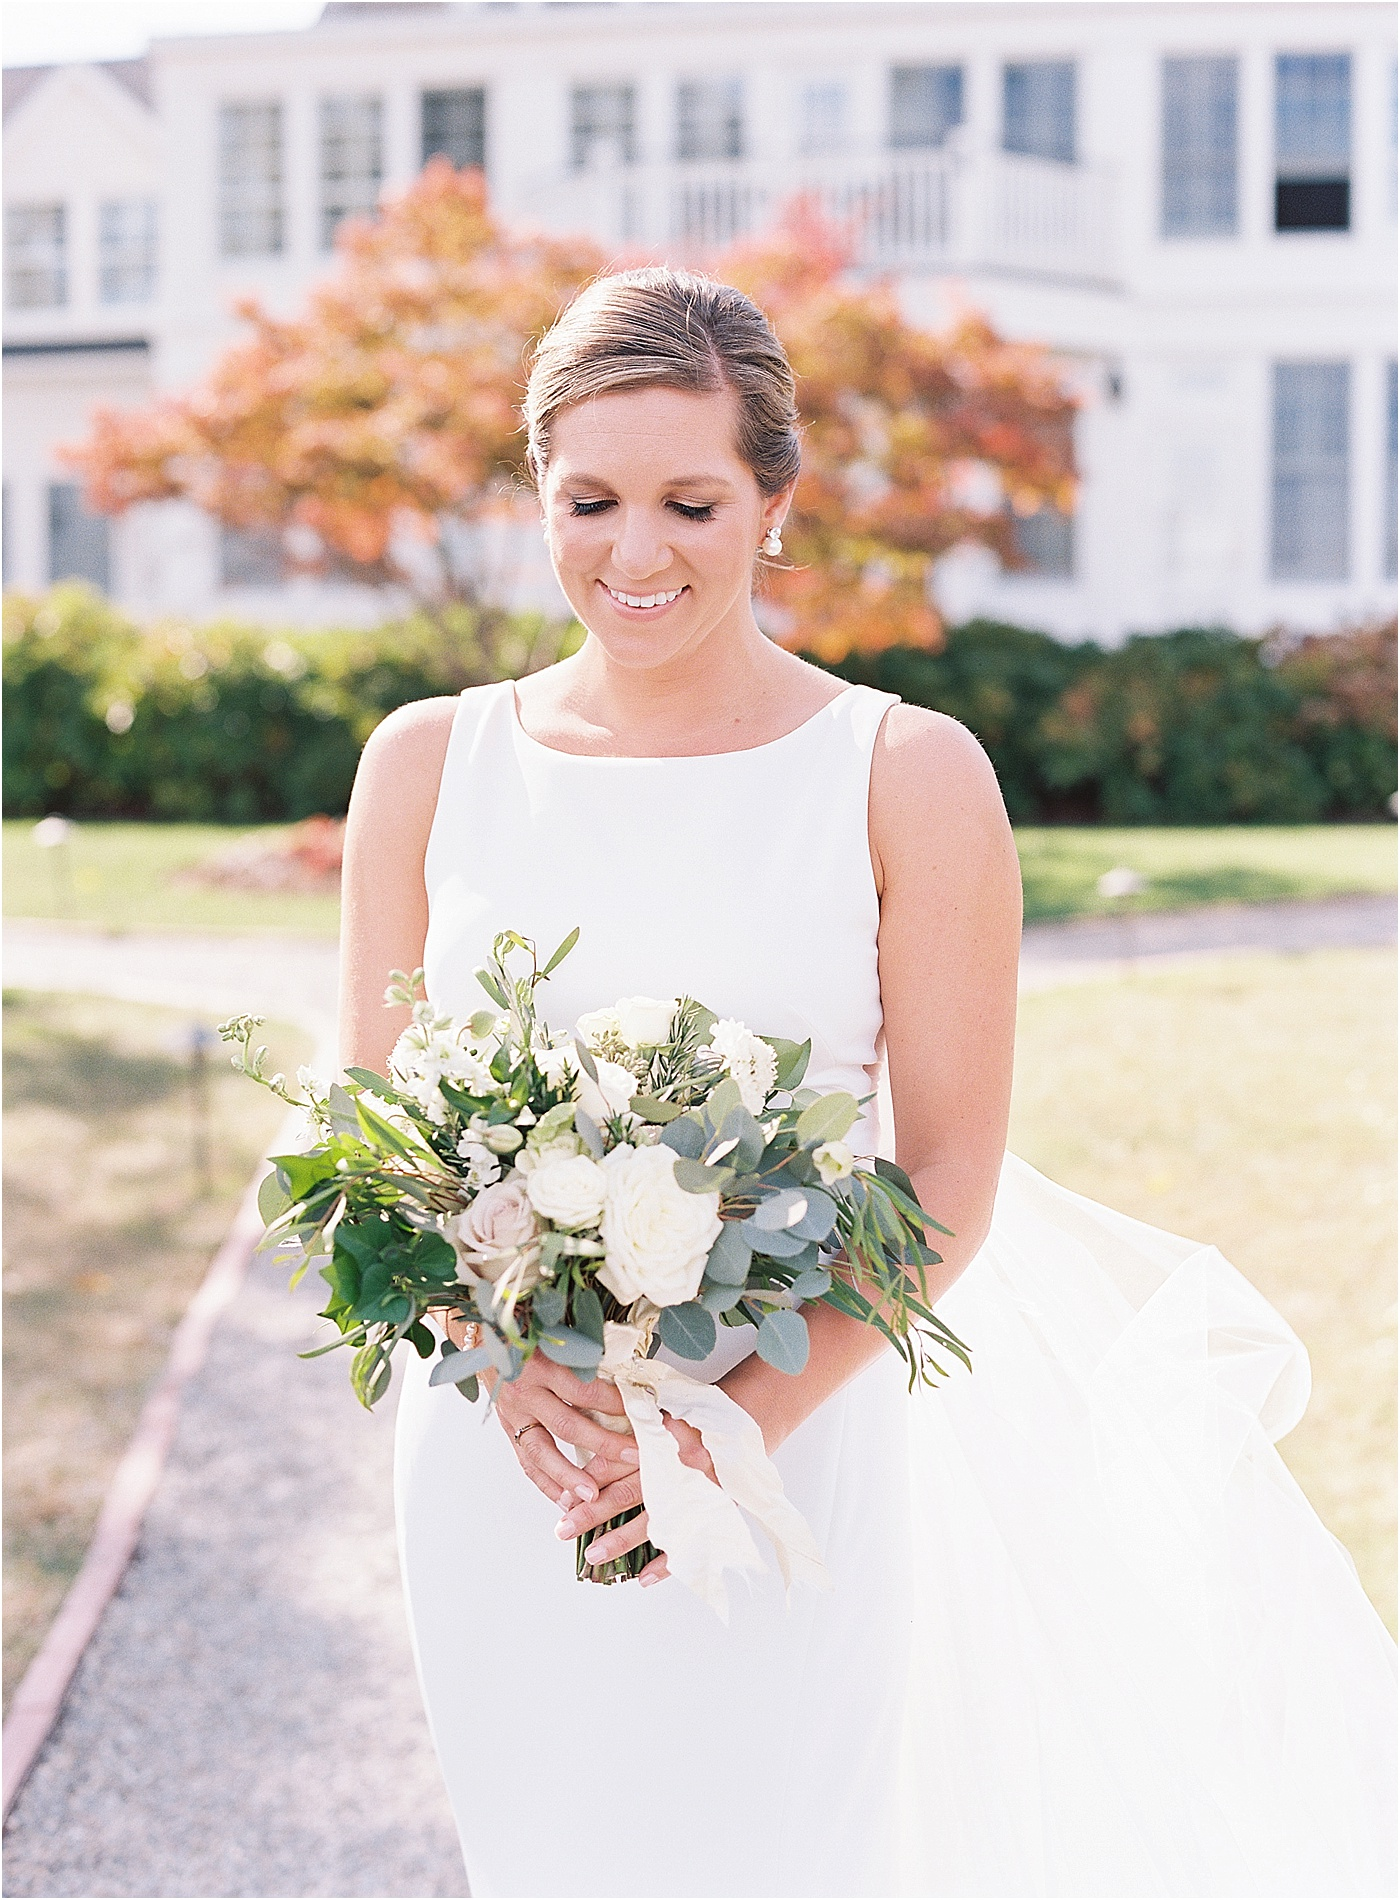 simple elegant bride wedding bouquet greenery soft white